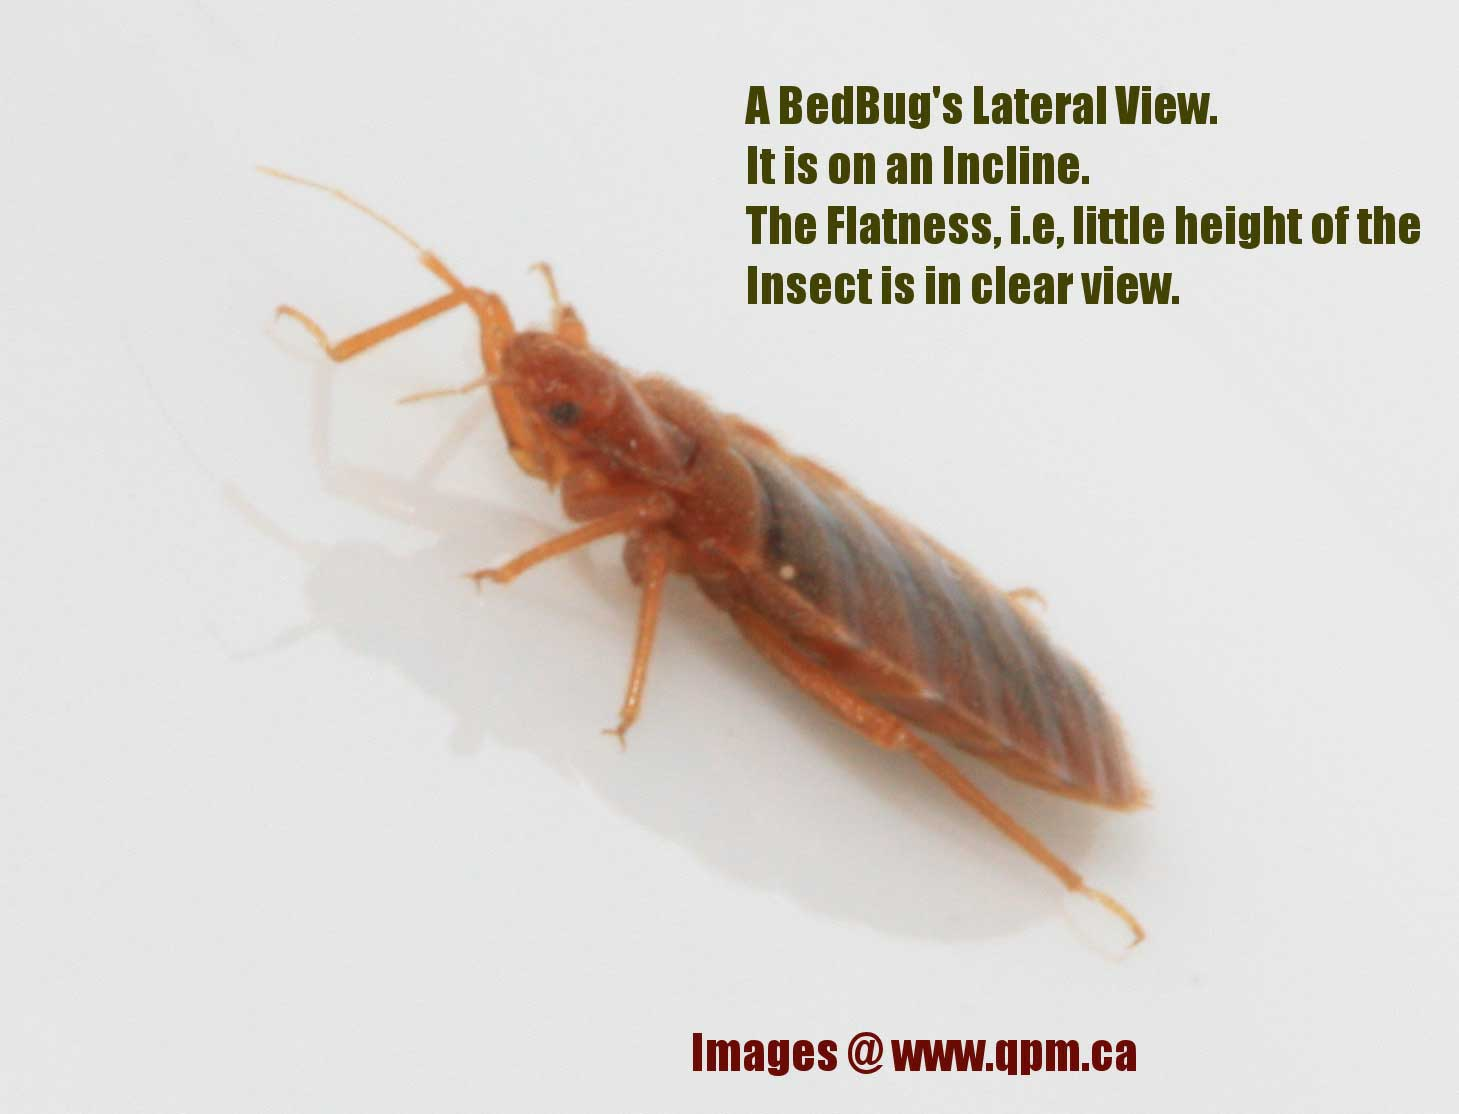 An Adult Bed Bug Side View